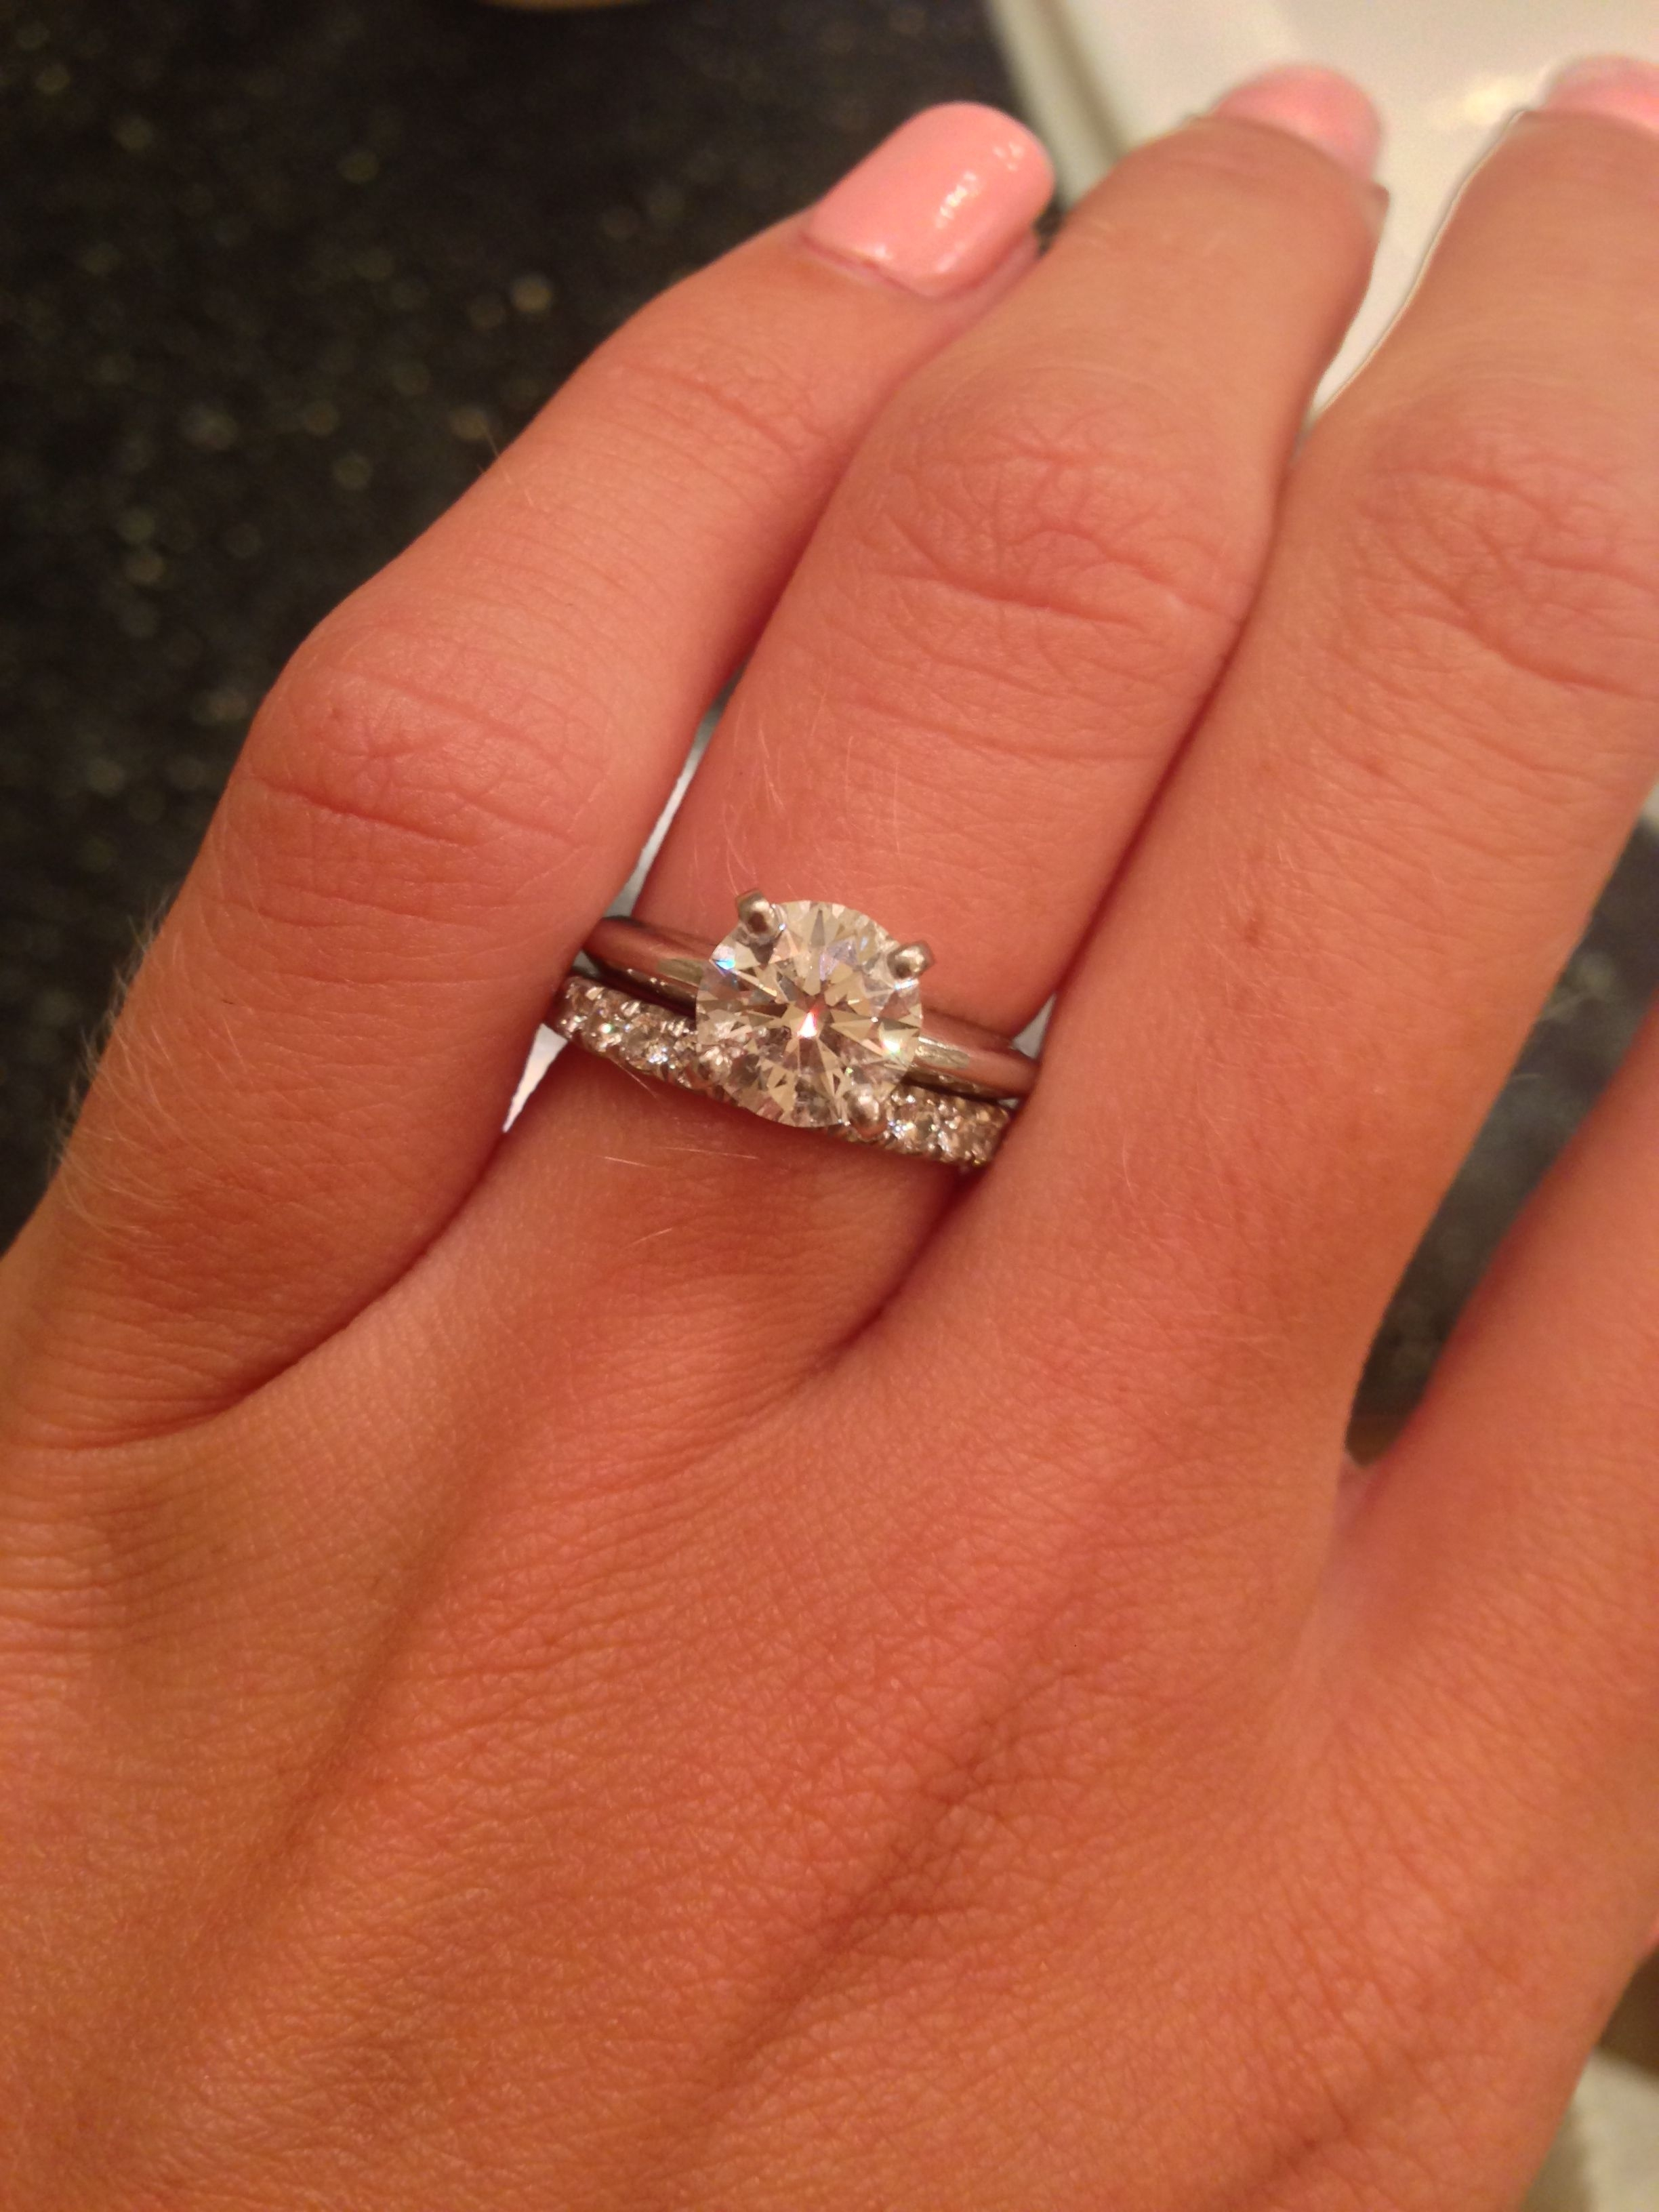 Stunning Costco Wedding Bands In Show Me Your Solitaire Rings With In Recent Costco Wedding Bands (View 15 of 15)